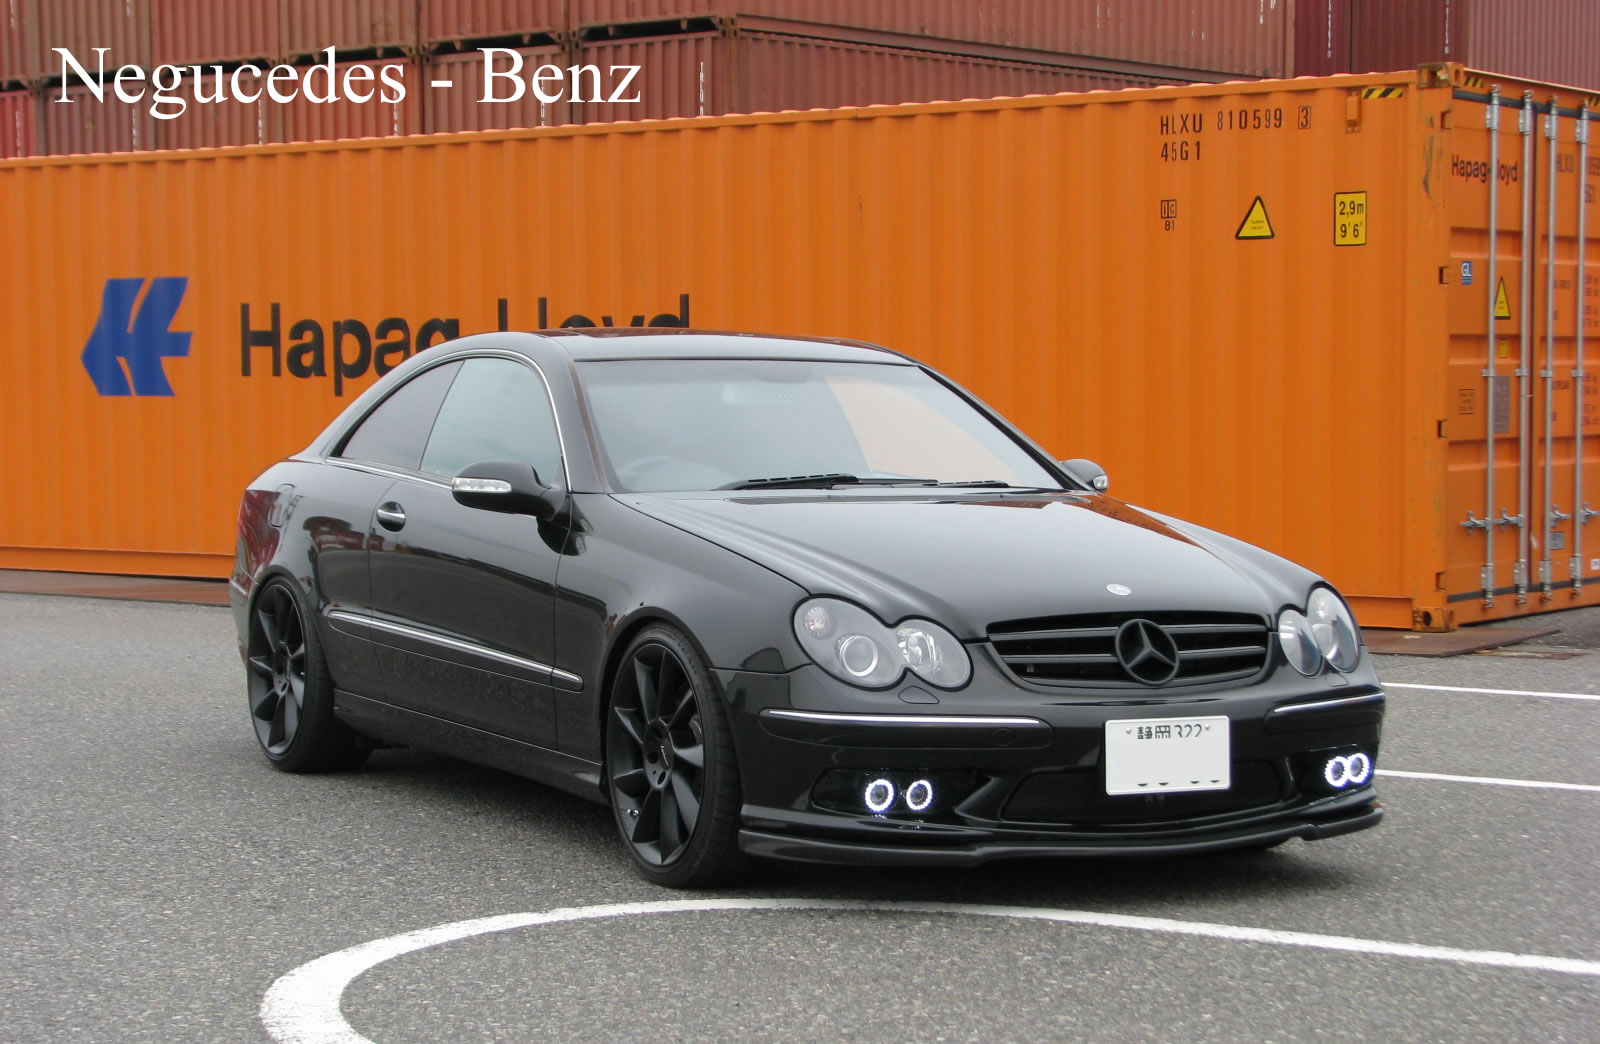 Clk W209 Picture Thread Page 76 Mbworld Org Forums